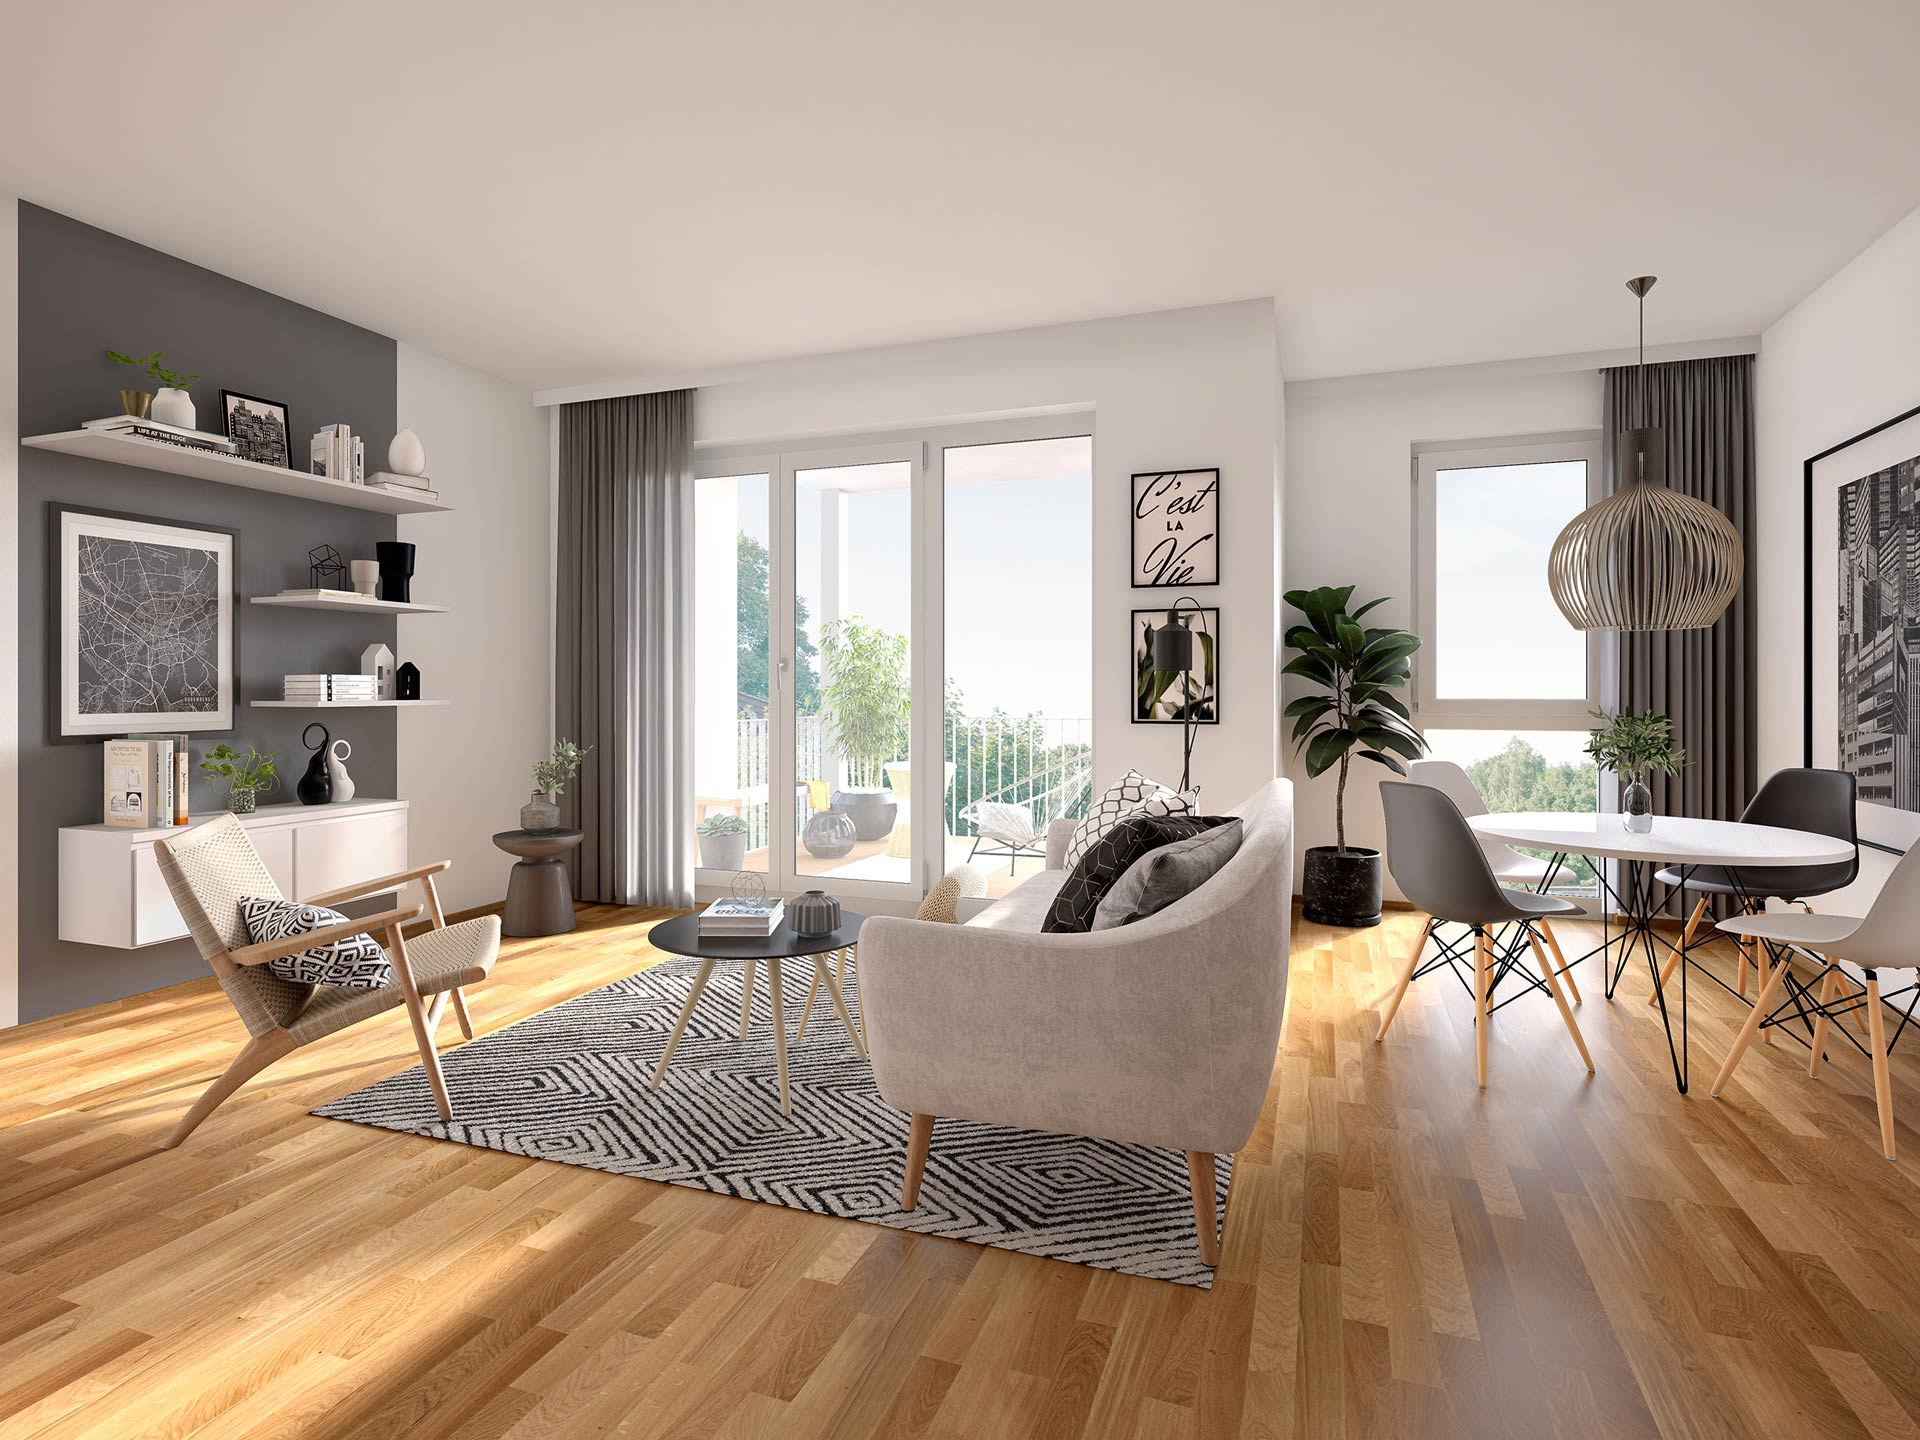 Bright rooms with spacious floor plans and high-quality furnishings